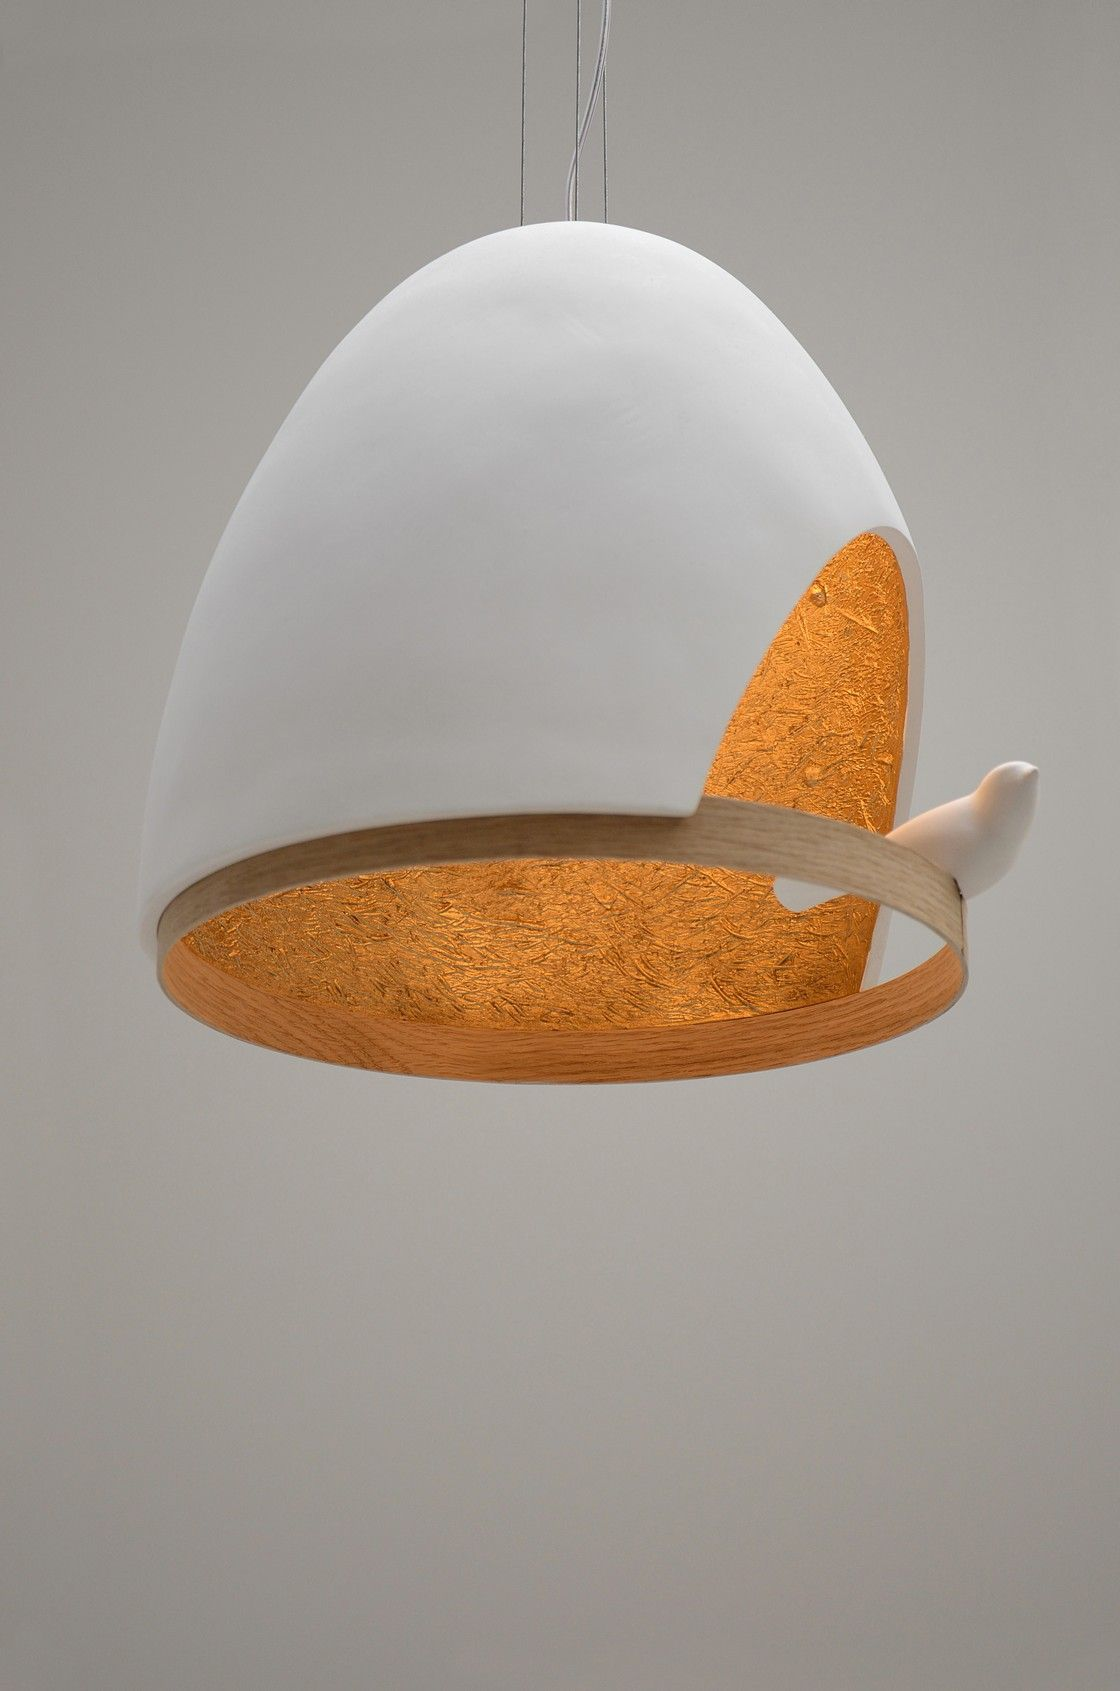 Pendant Light Lampe Oiseau By Olivier Chabaud And Jean Francois